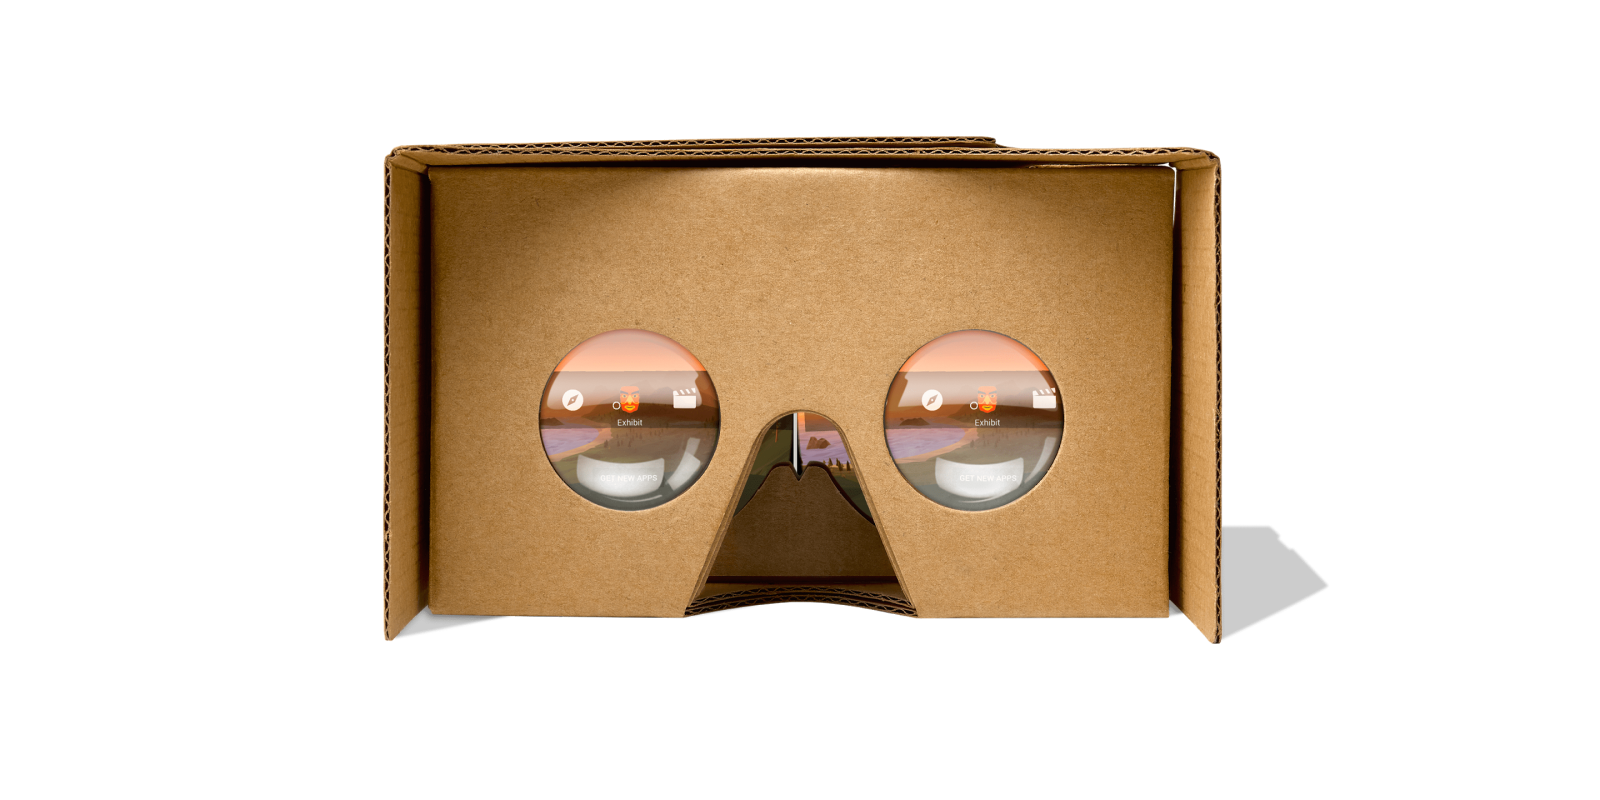 Google Cardboard open sourced as active development on Google VR SDK stops